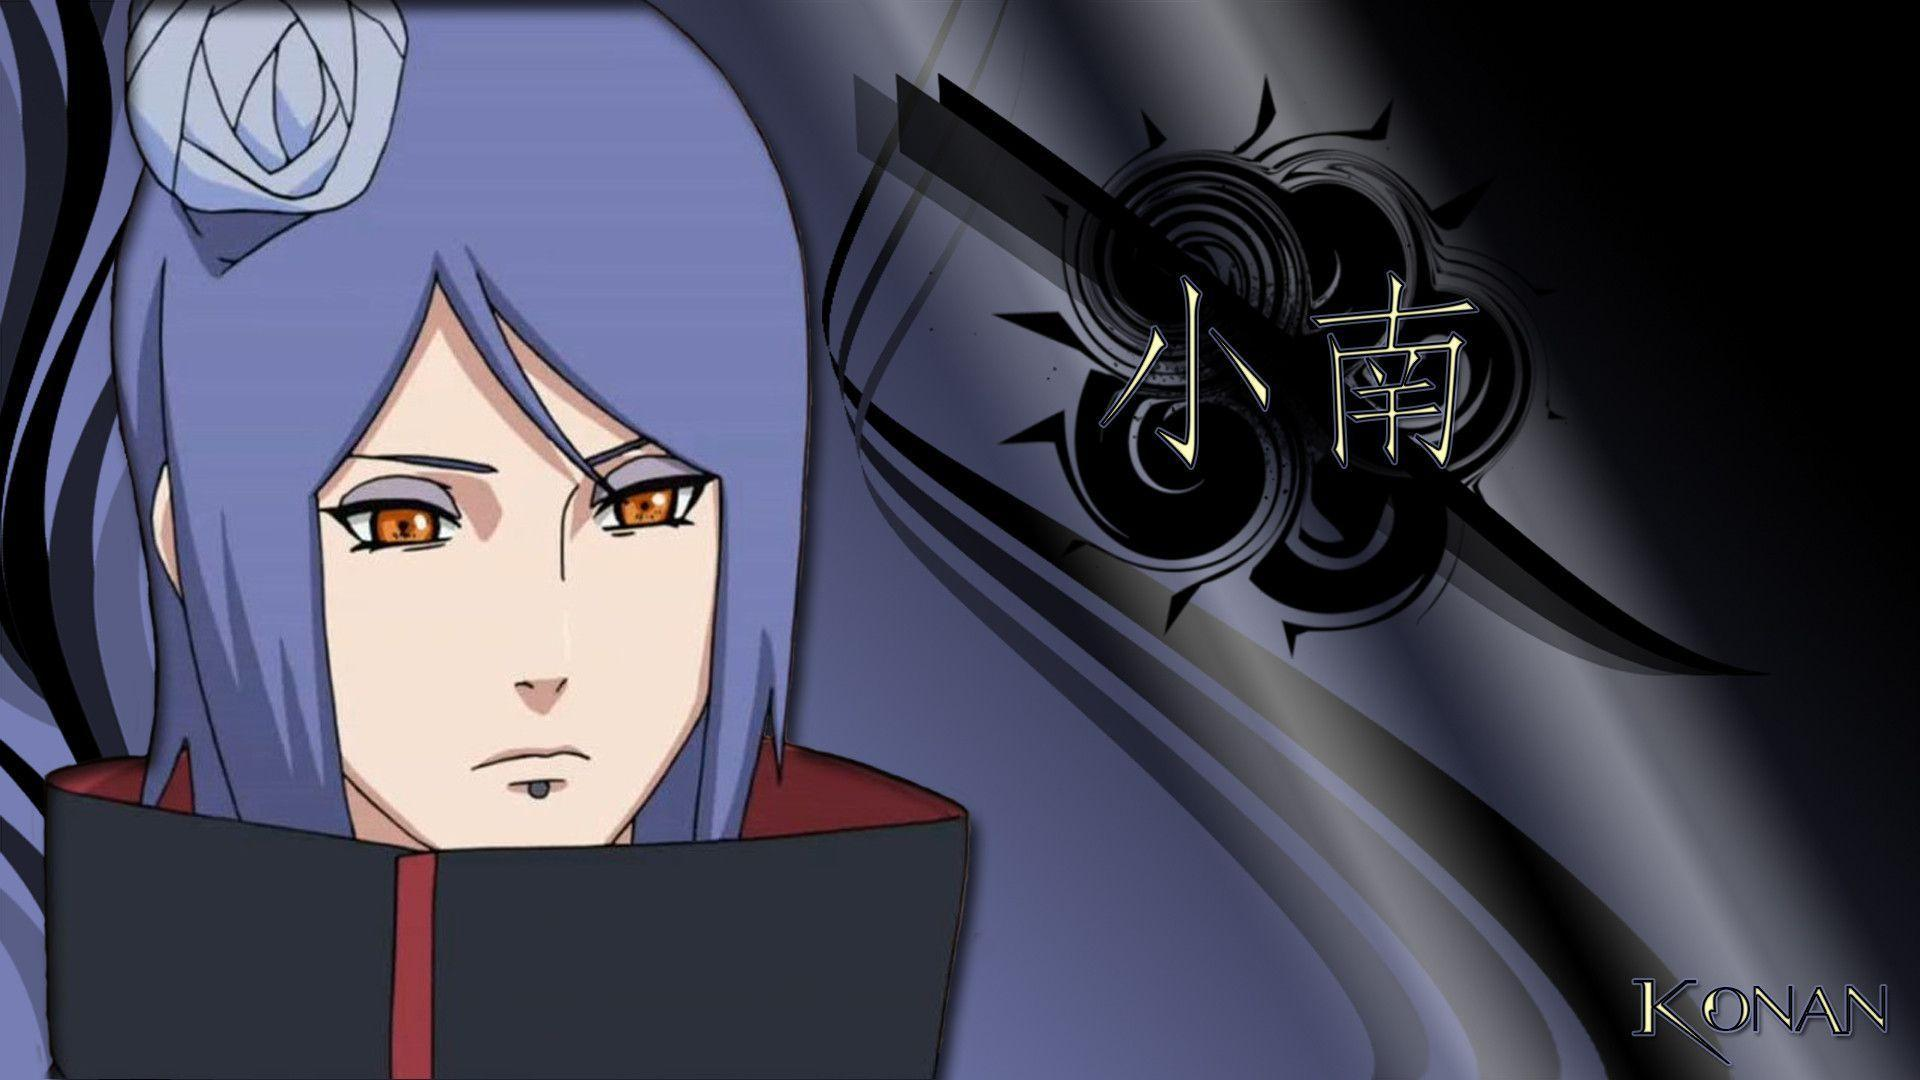 Konan Wallpapers - Wallpaper Cave